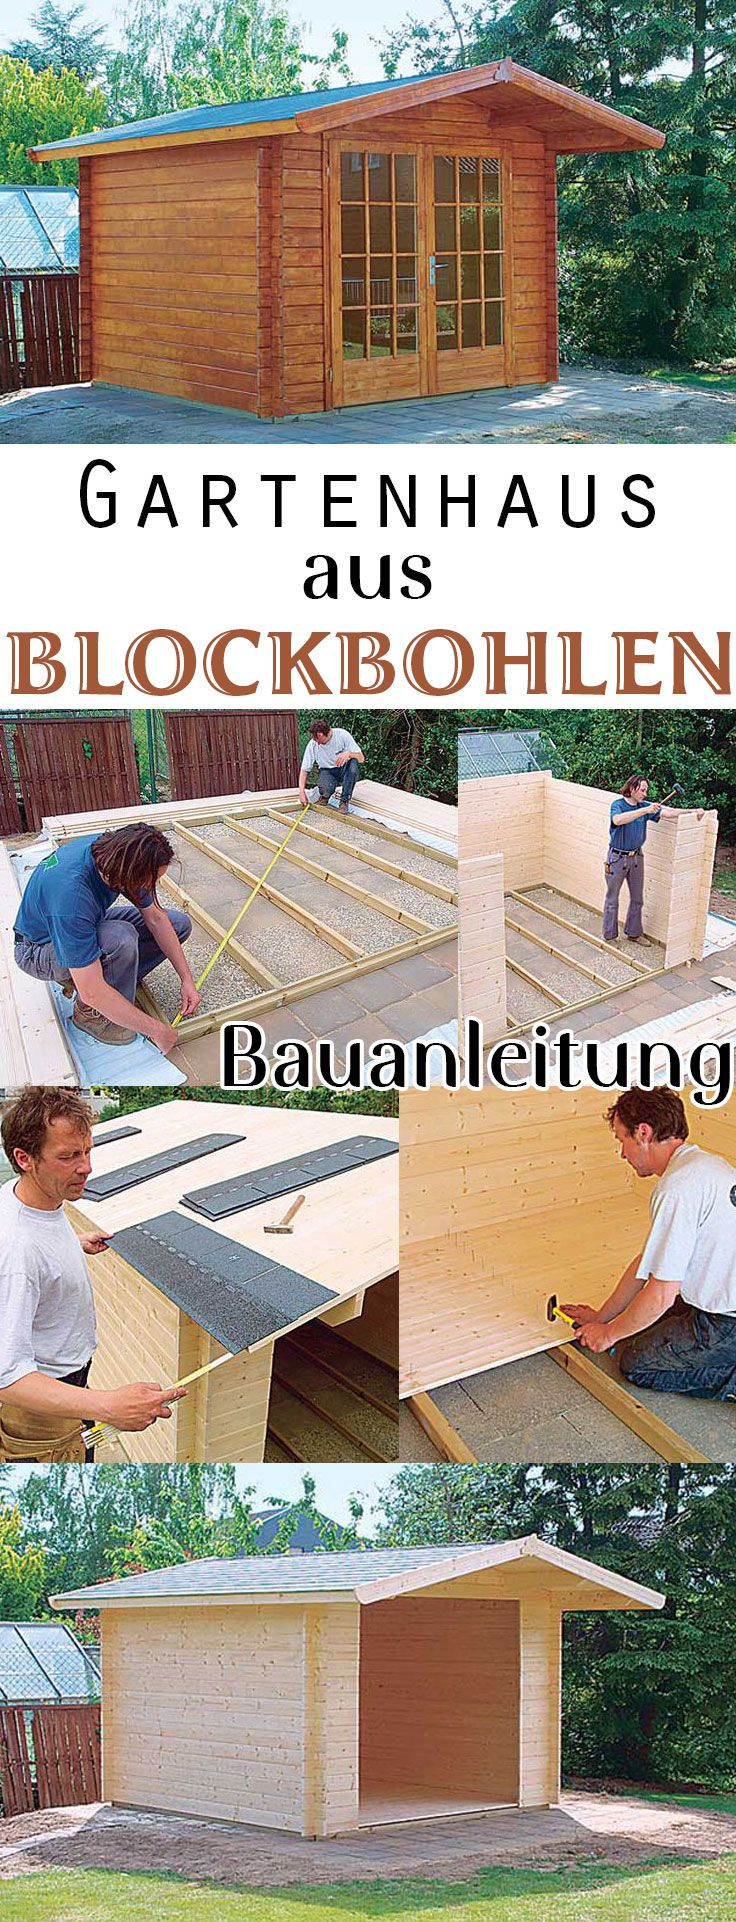 1000 ideas about pallet pergola on pinterest pallets pergolas and pallet ottoman. Black Bedroom Furniture Sets. Home Design Ideas